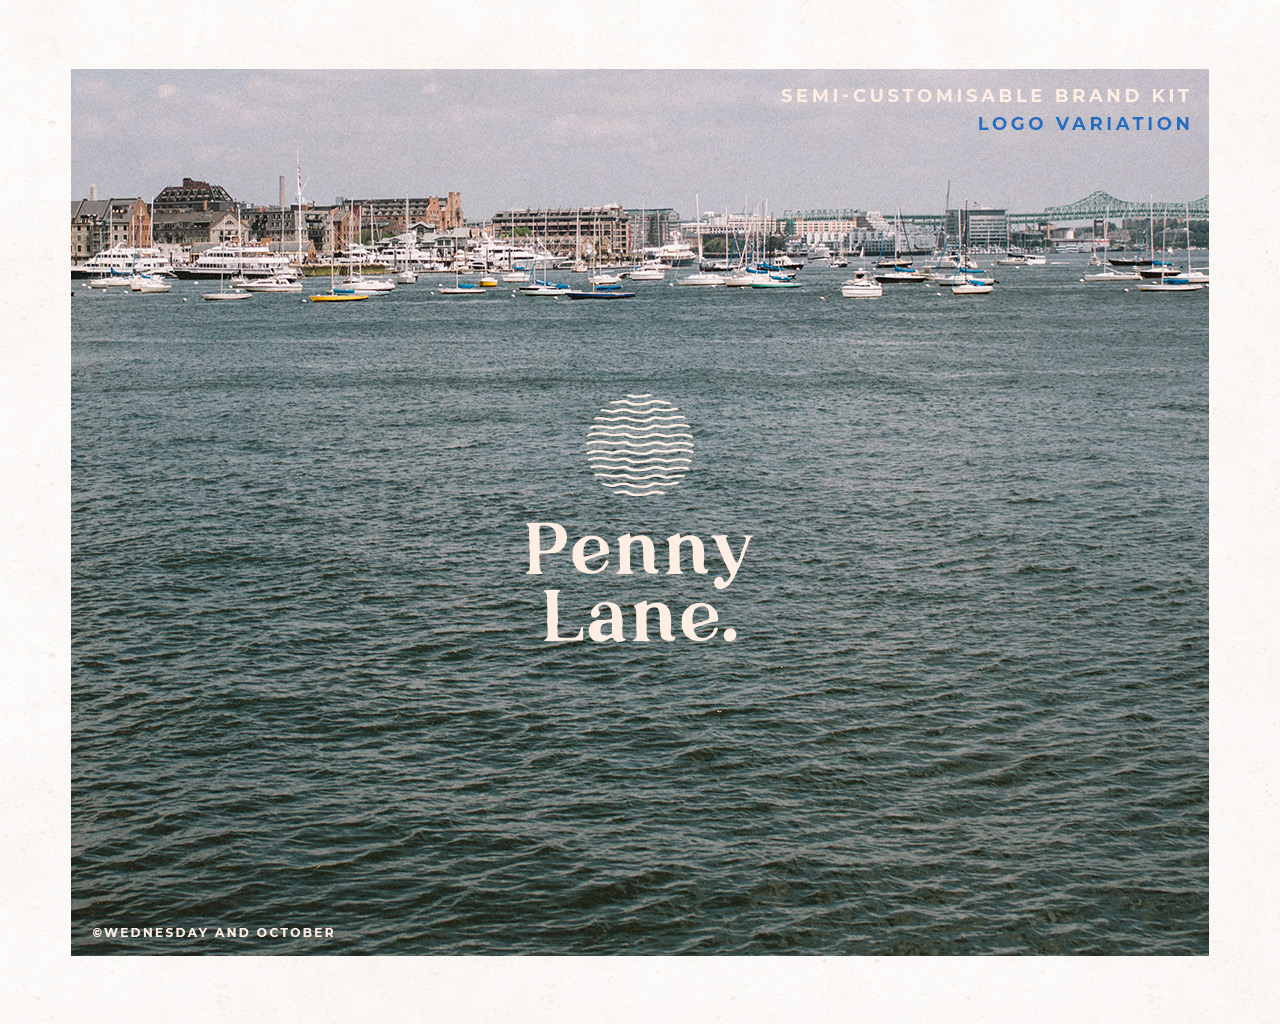 Customisable Brand Kit Penny Lane